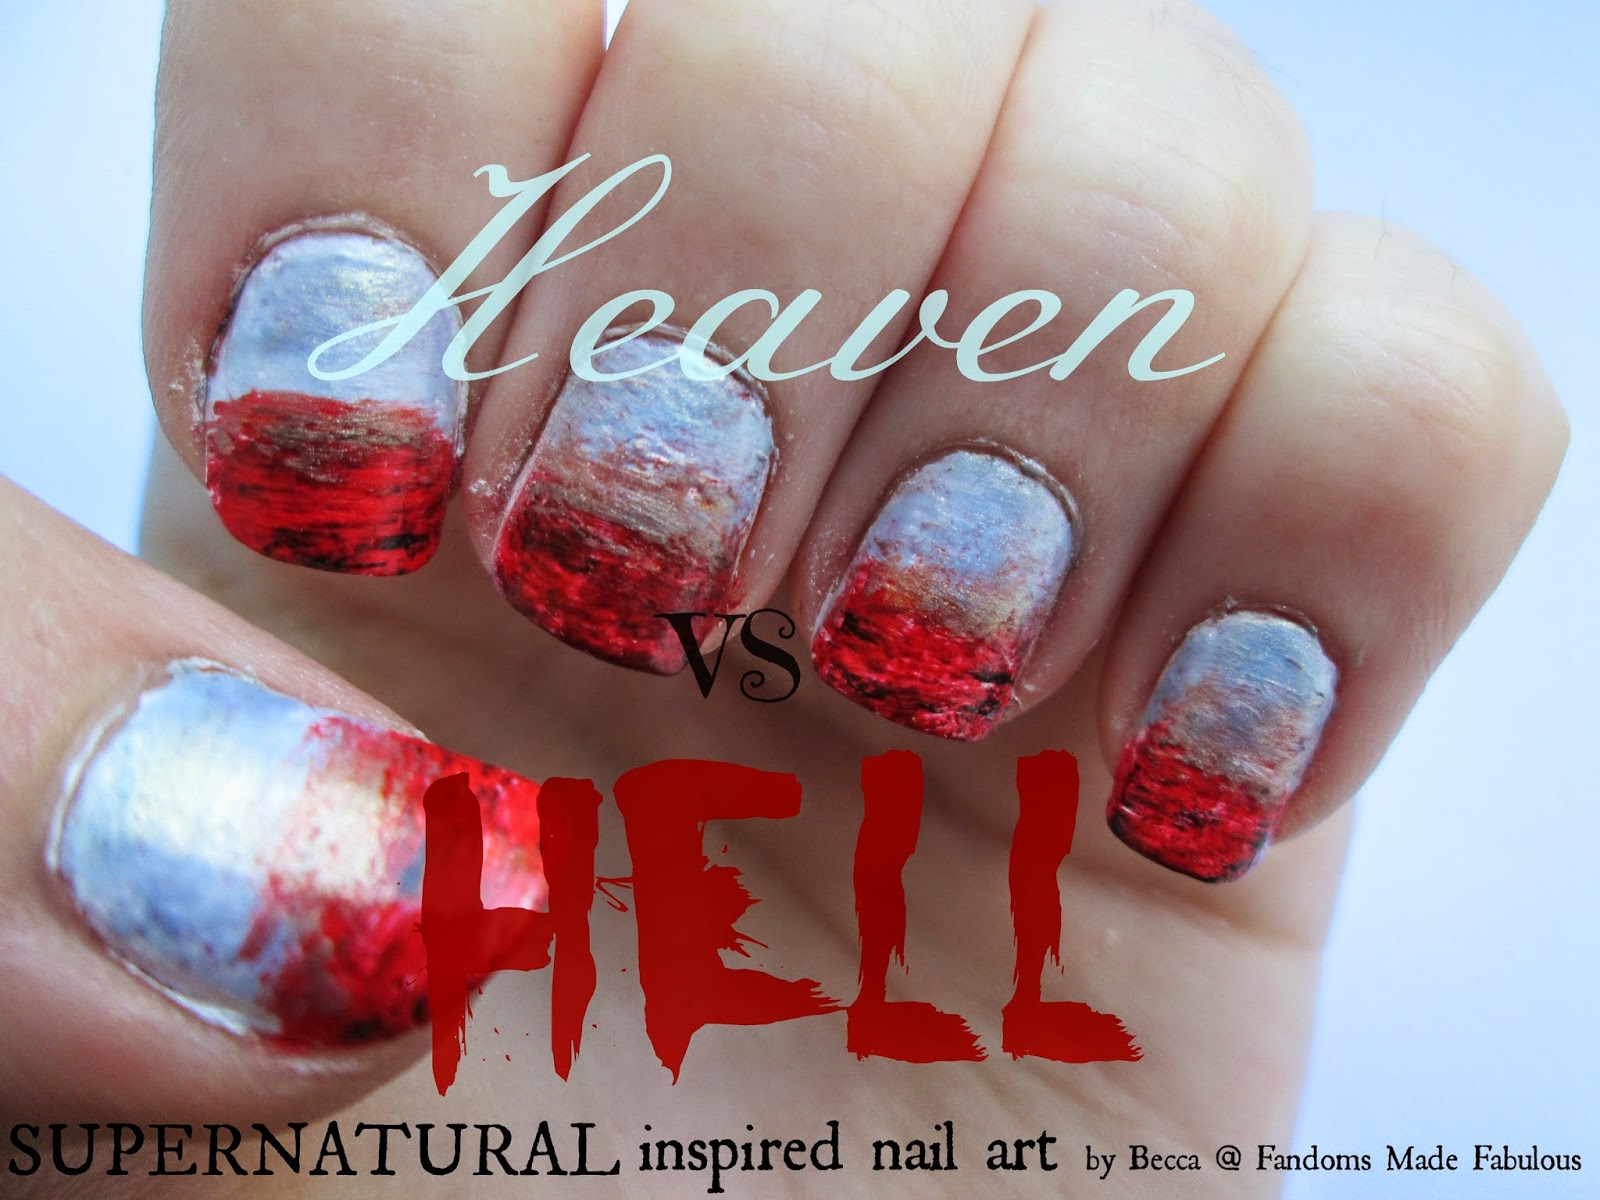 Fandoms made fabulous heaven and hell supernatural inspired for this nail art i wanted to try a gradient a technique ive never done before as well as trying something new i also wanted to do a gradient to prinsesfo Image collections